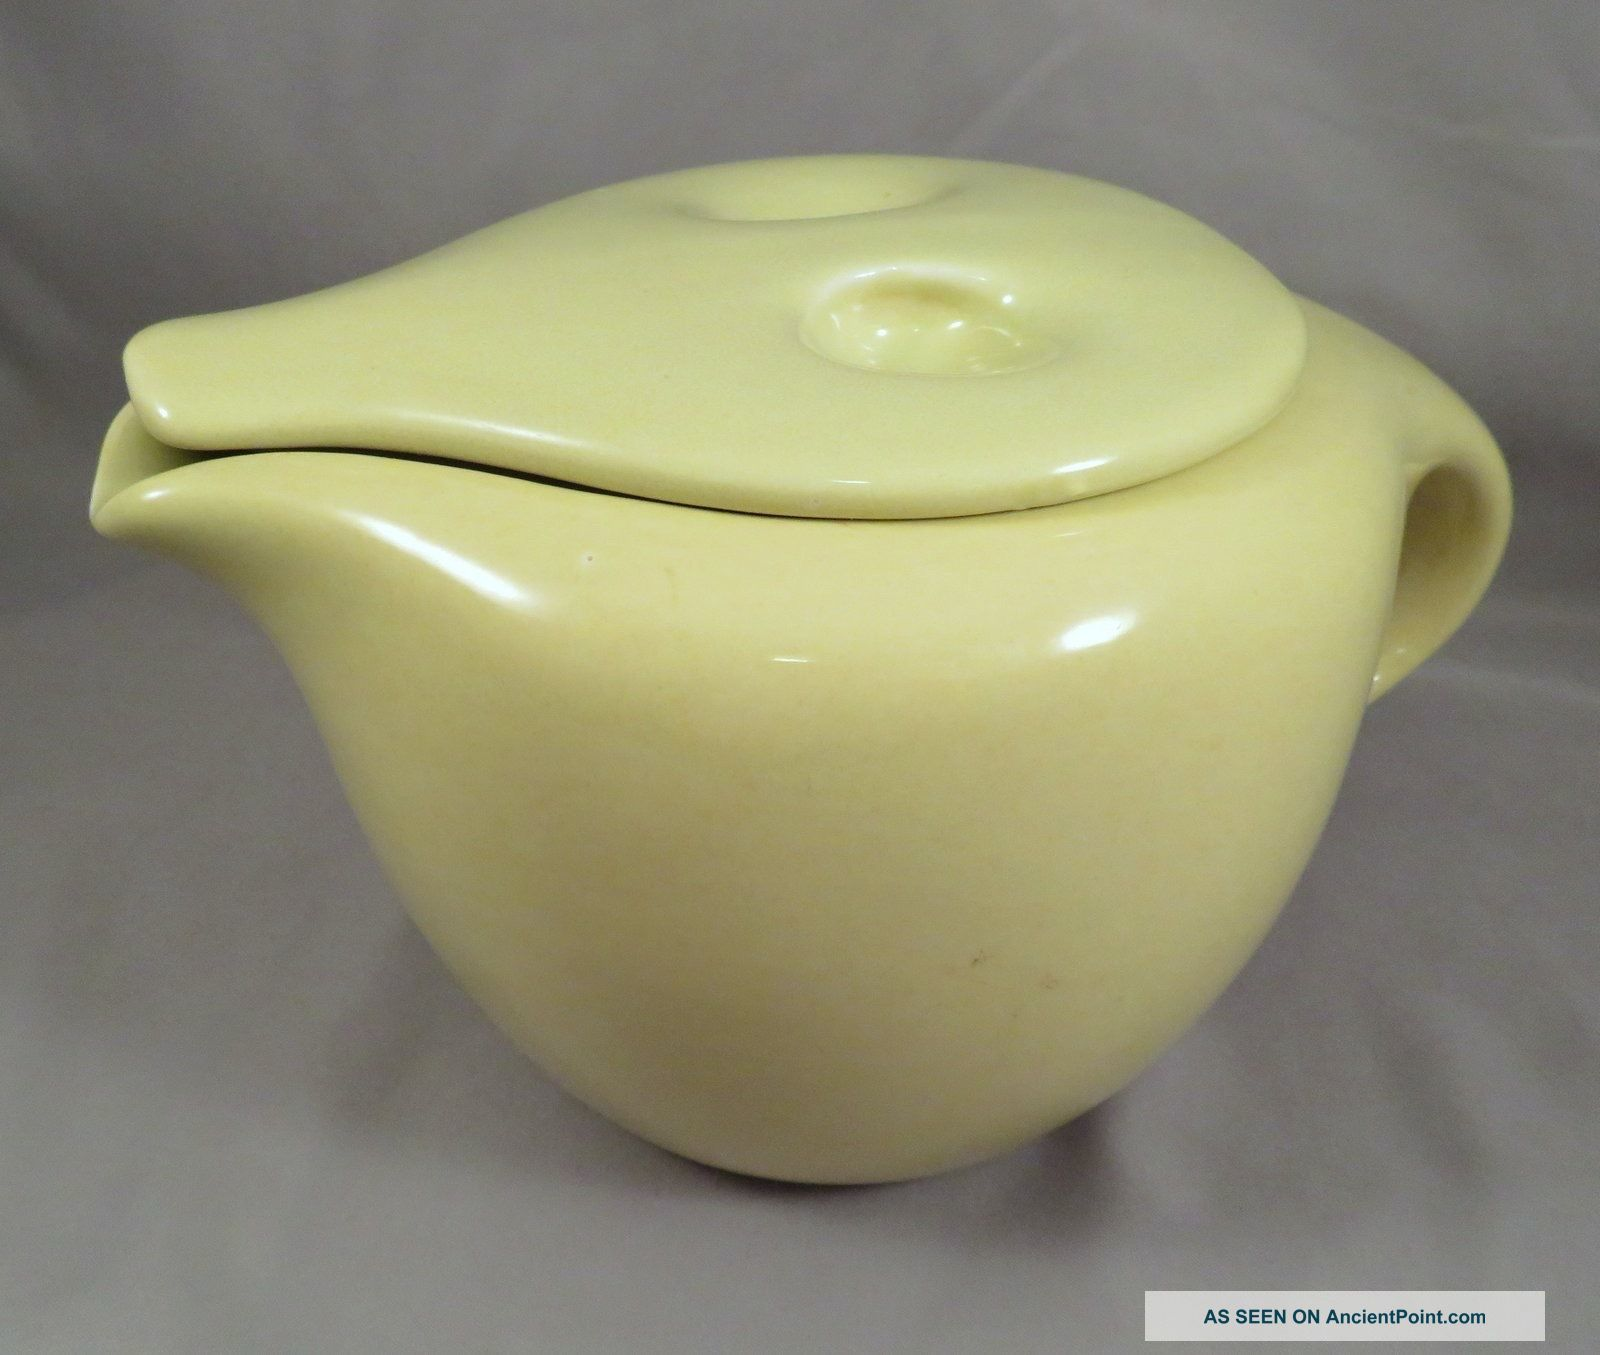 Authentic 1954 - 67 Russell Wright Avocado Yellow Iroquois Lidded 3cp Coffee Pot Mid-Century Modernism photo